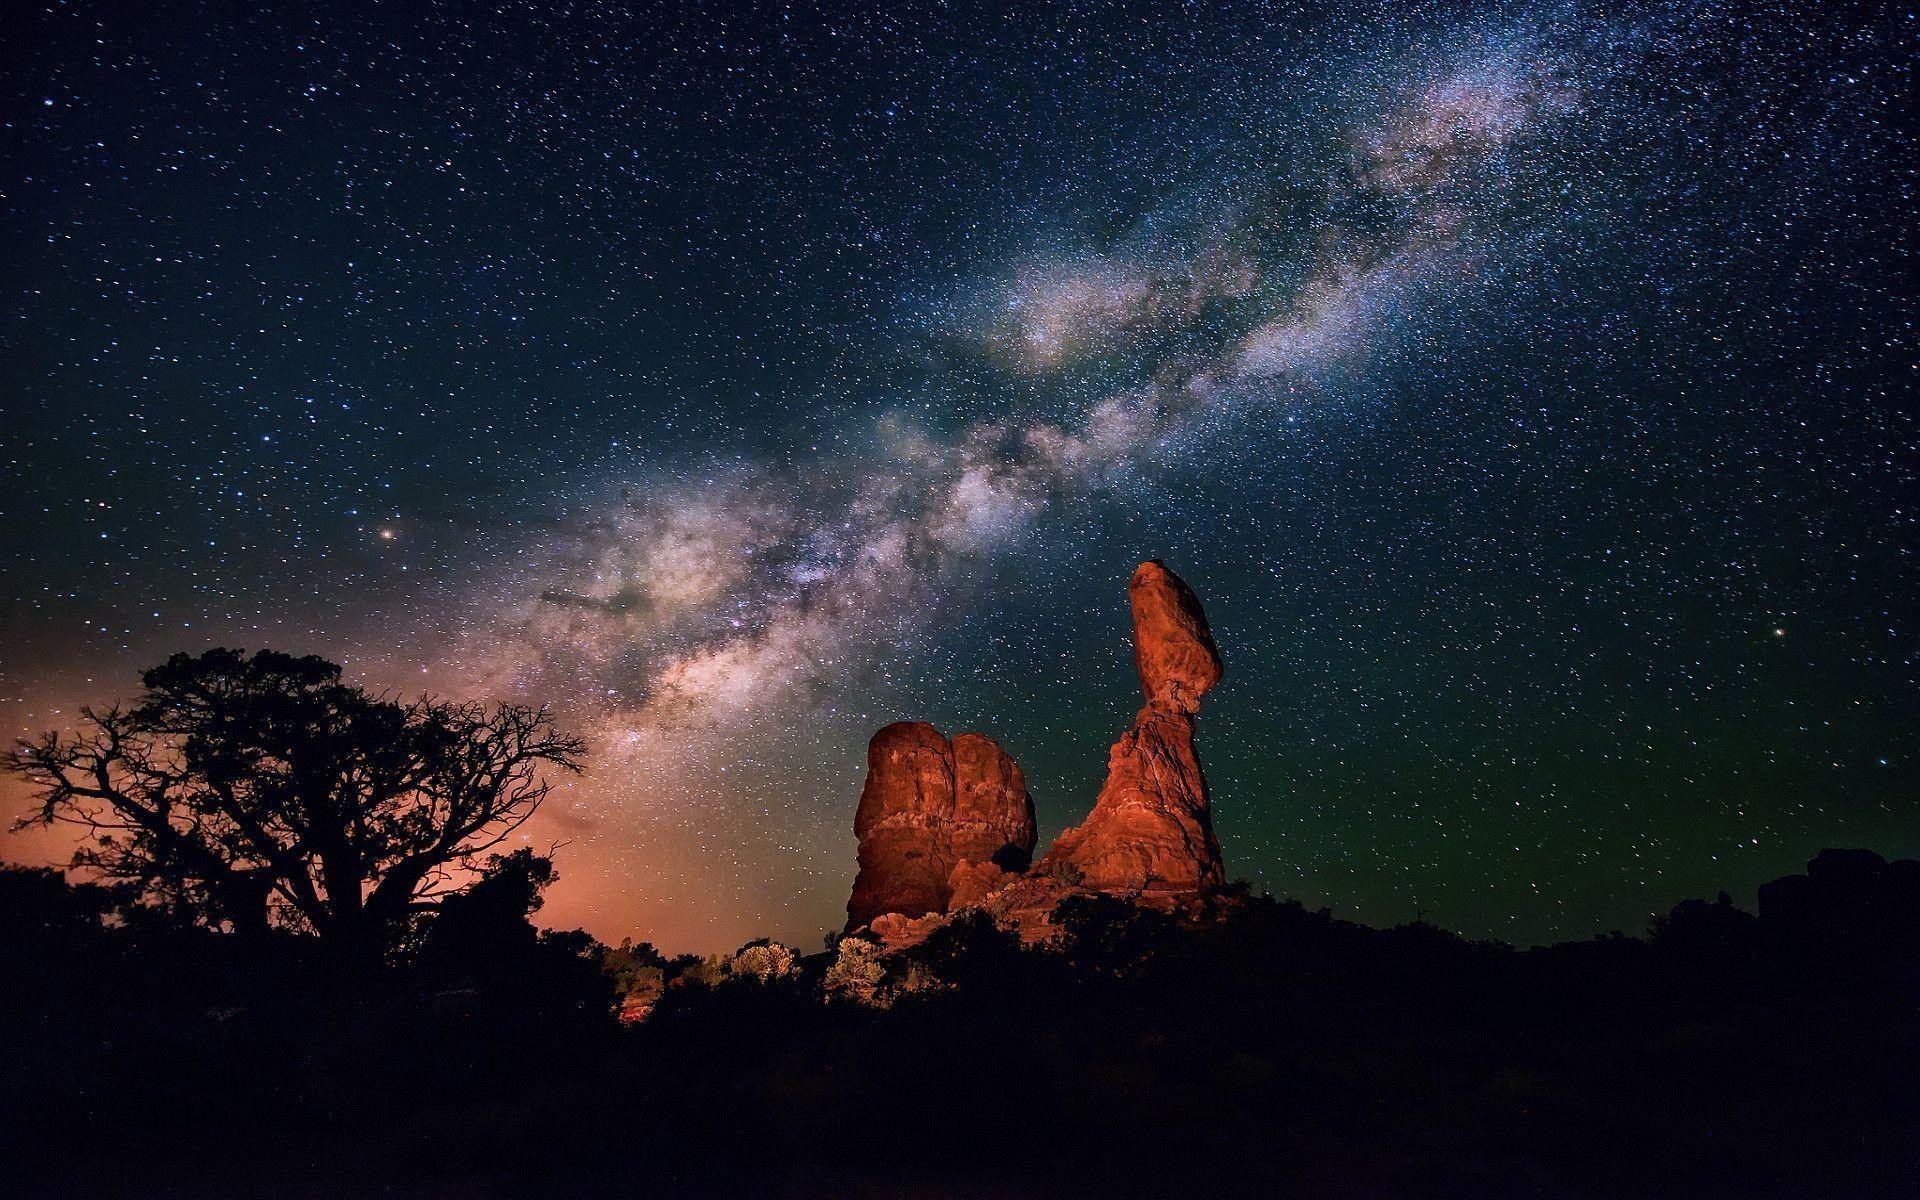 Milky way night Wallpapers